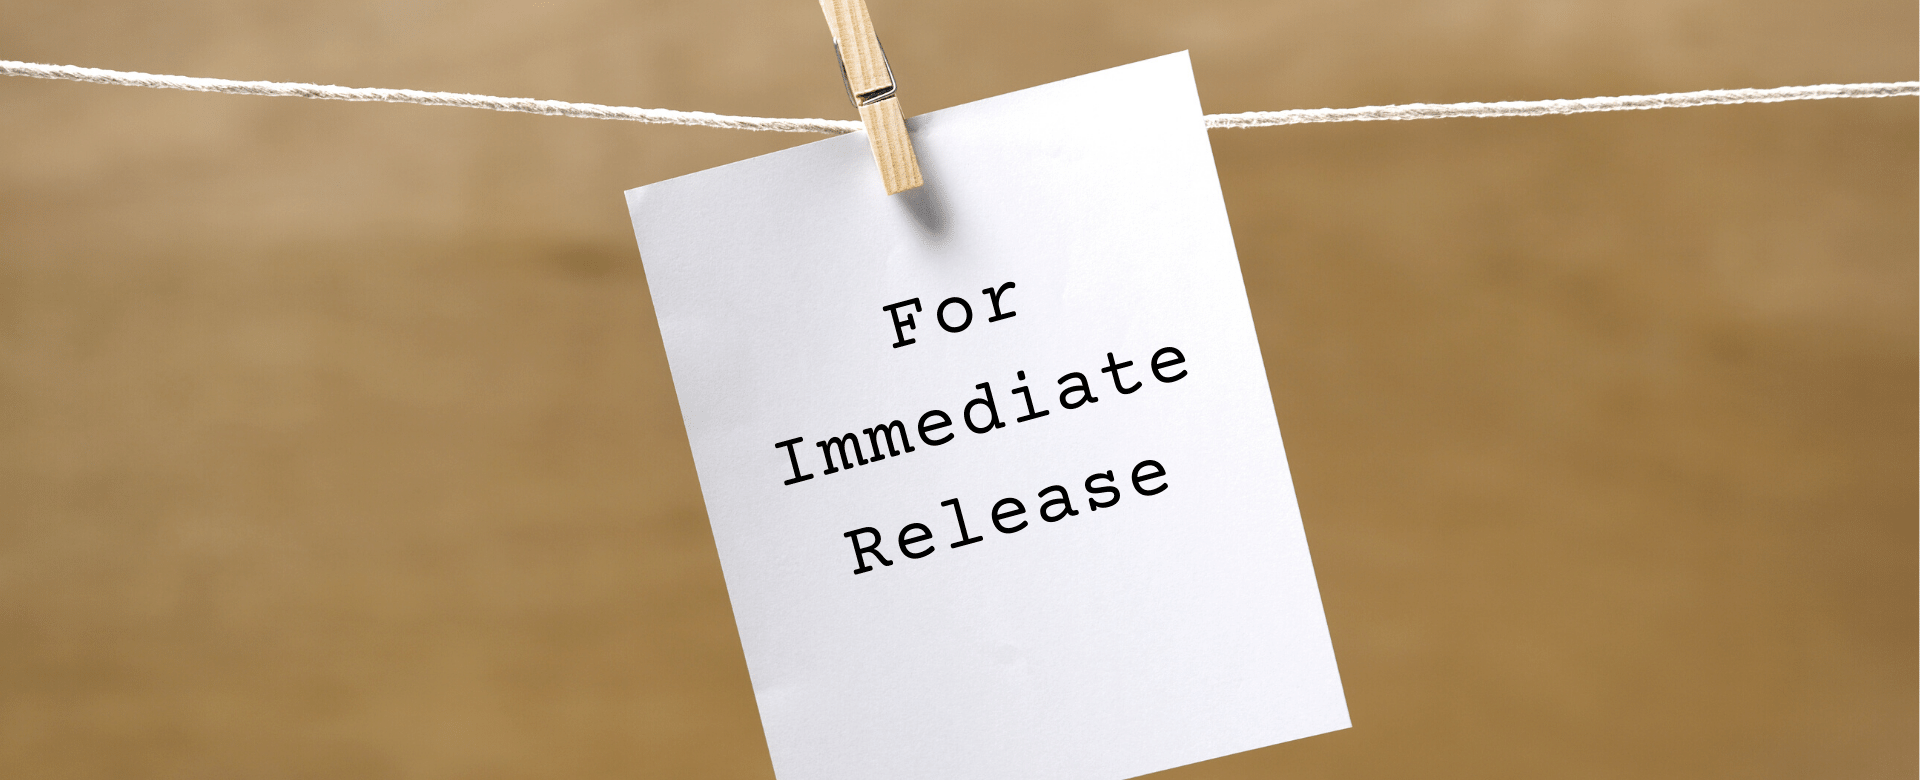 image of text on a note for immediate release